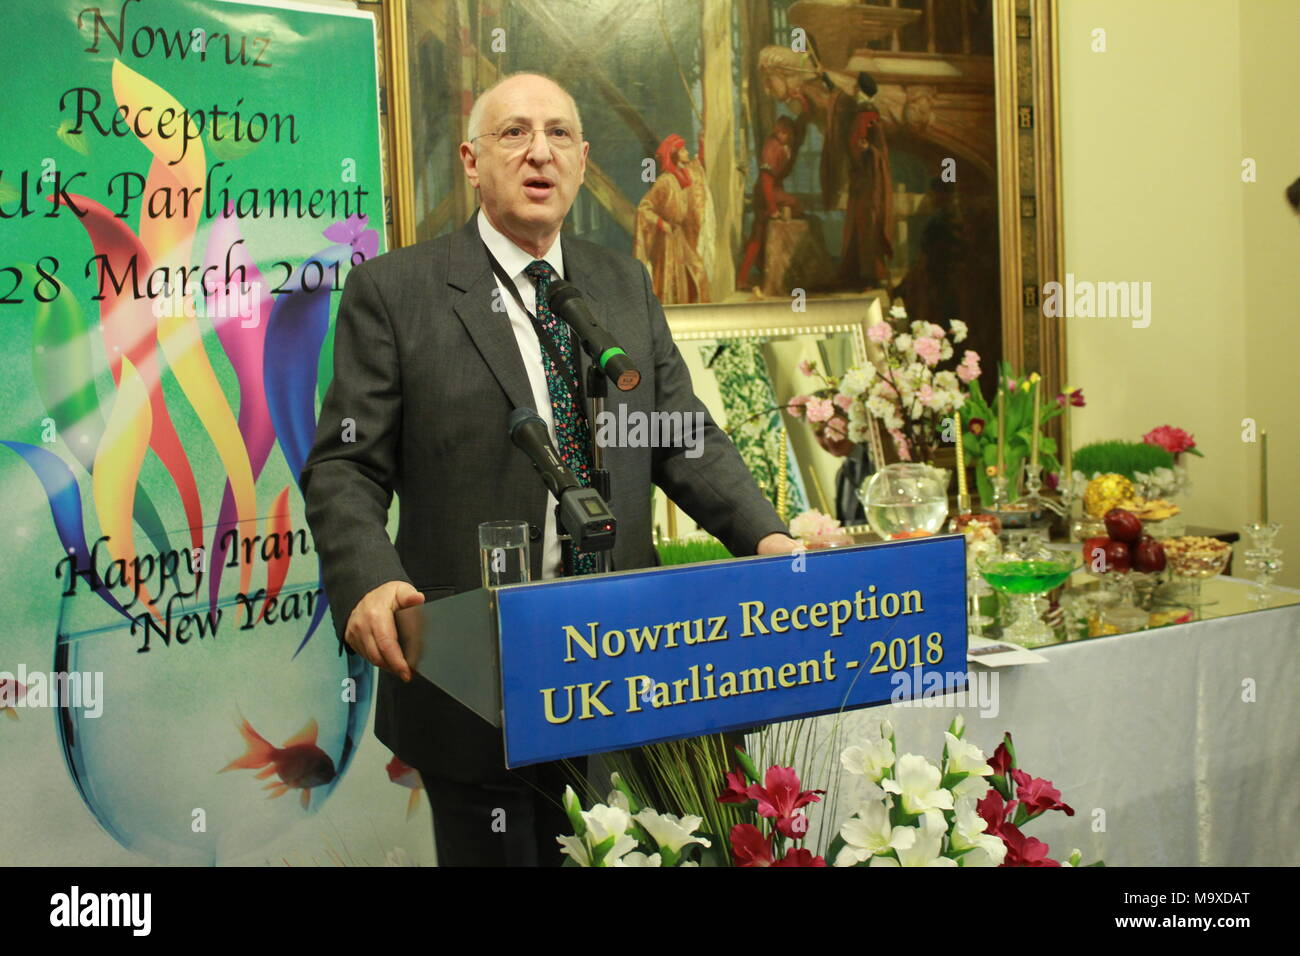 London, UK. 28th Mar, 2018. Lord Carlile of Berriew CBE QC, London, UK, 28/03/2018 - Cross-party MPs & Peers joined members of the Anglo-Iranian community for Nowruz celebration in the UK Parliament on Wednesday 28 March 2018. Lord Carlile of Berriew CBE QC, co-chair of the British Committee for Iran Freedom, speaking at this event and said, the violent crackdown and arbitrary mass arrests by the Iranian authorities in response to the popular protests exposes the regimeÕs inability to answer the legitimate demands of the Iranian people. Credit: Siavosh Hosseini/Alamy Live News - Stock Image